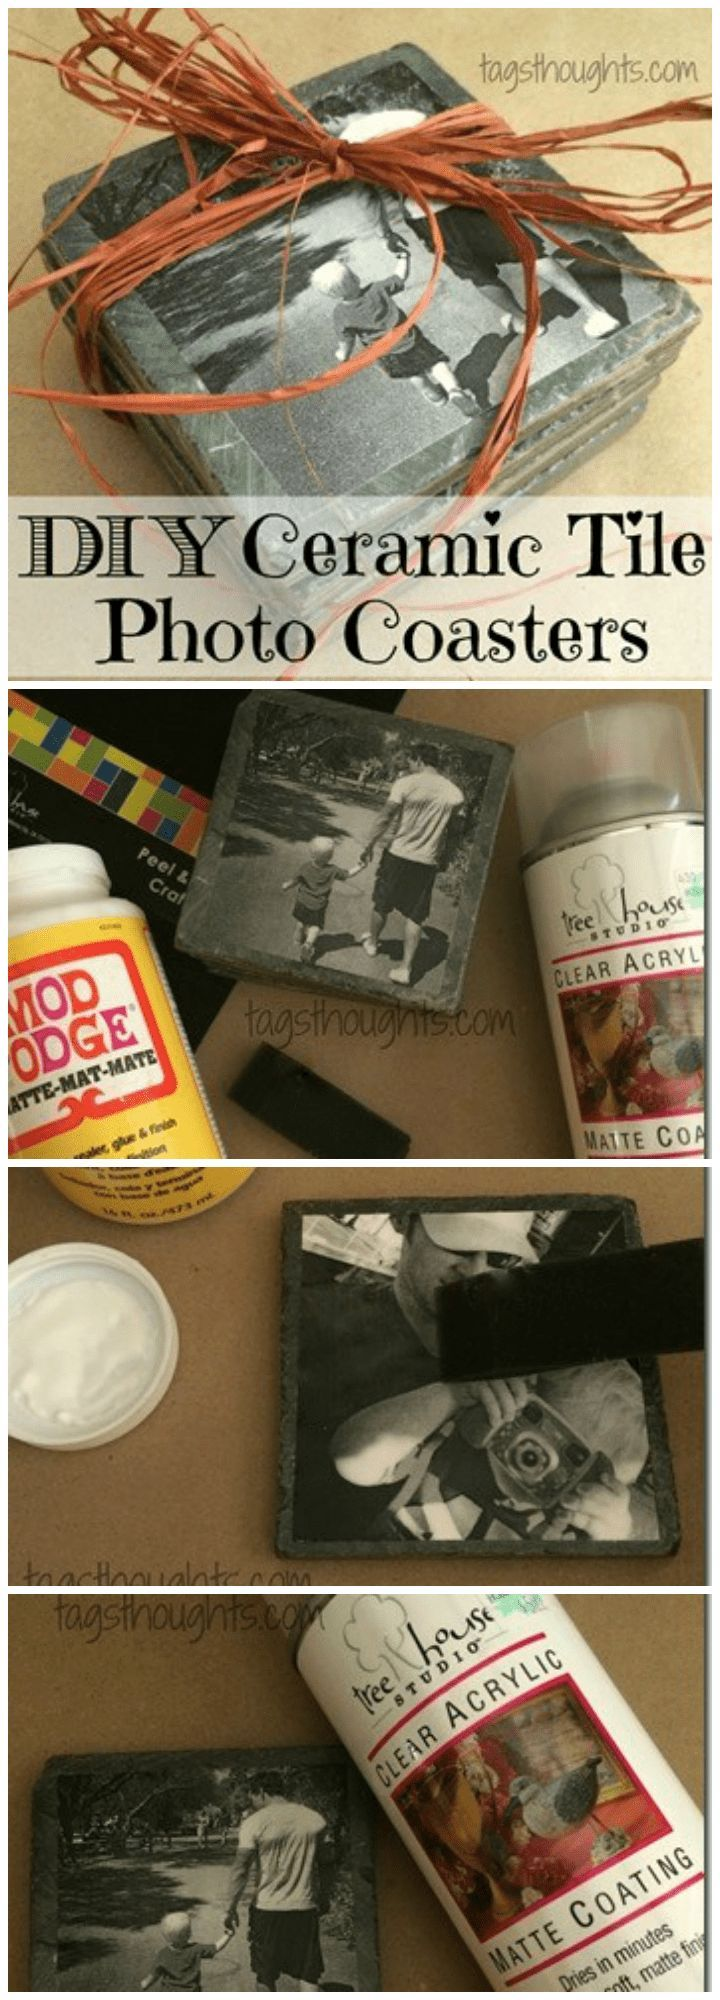 DIY Ceramic Tile Photo Coasters #bestgiftsforgrandparents